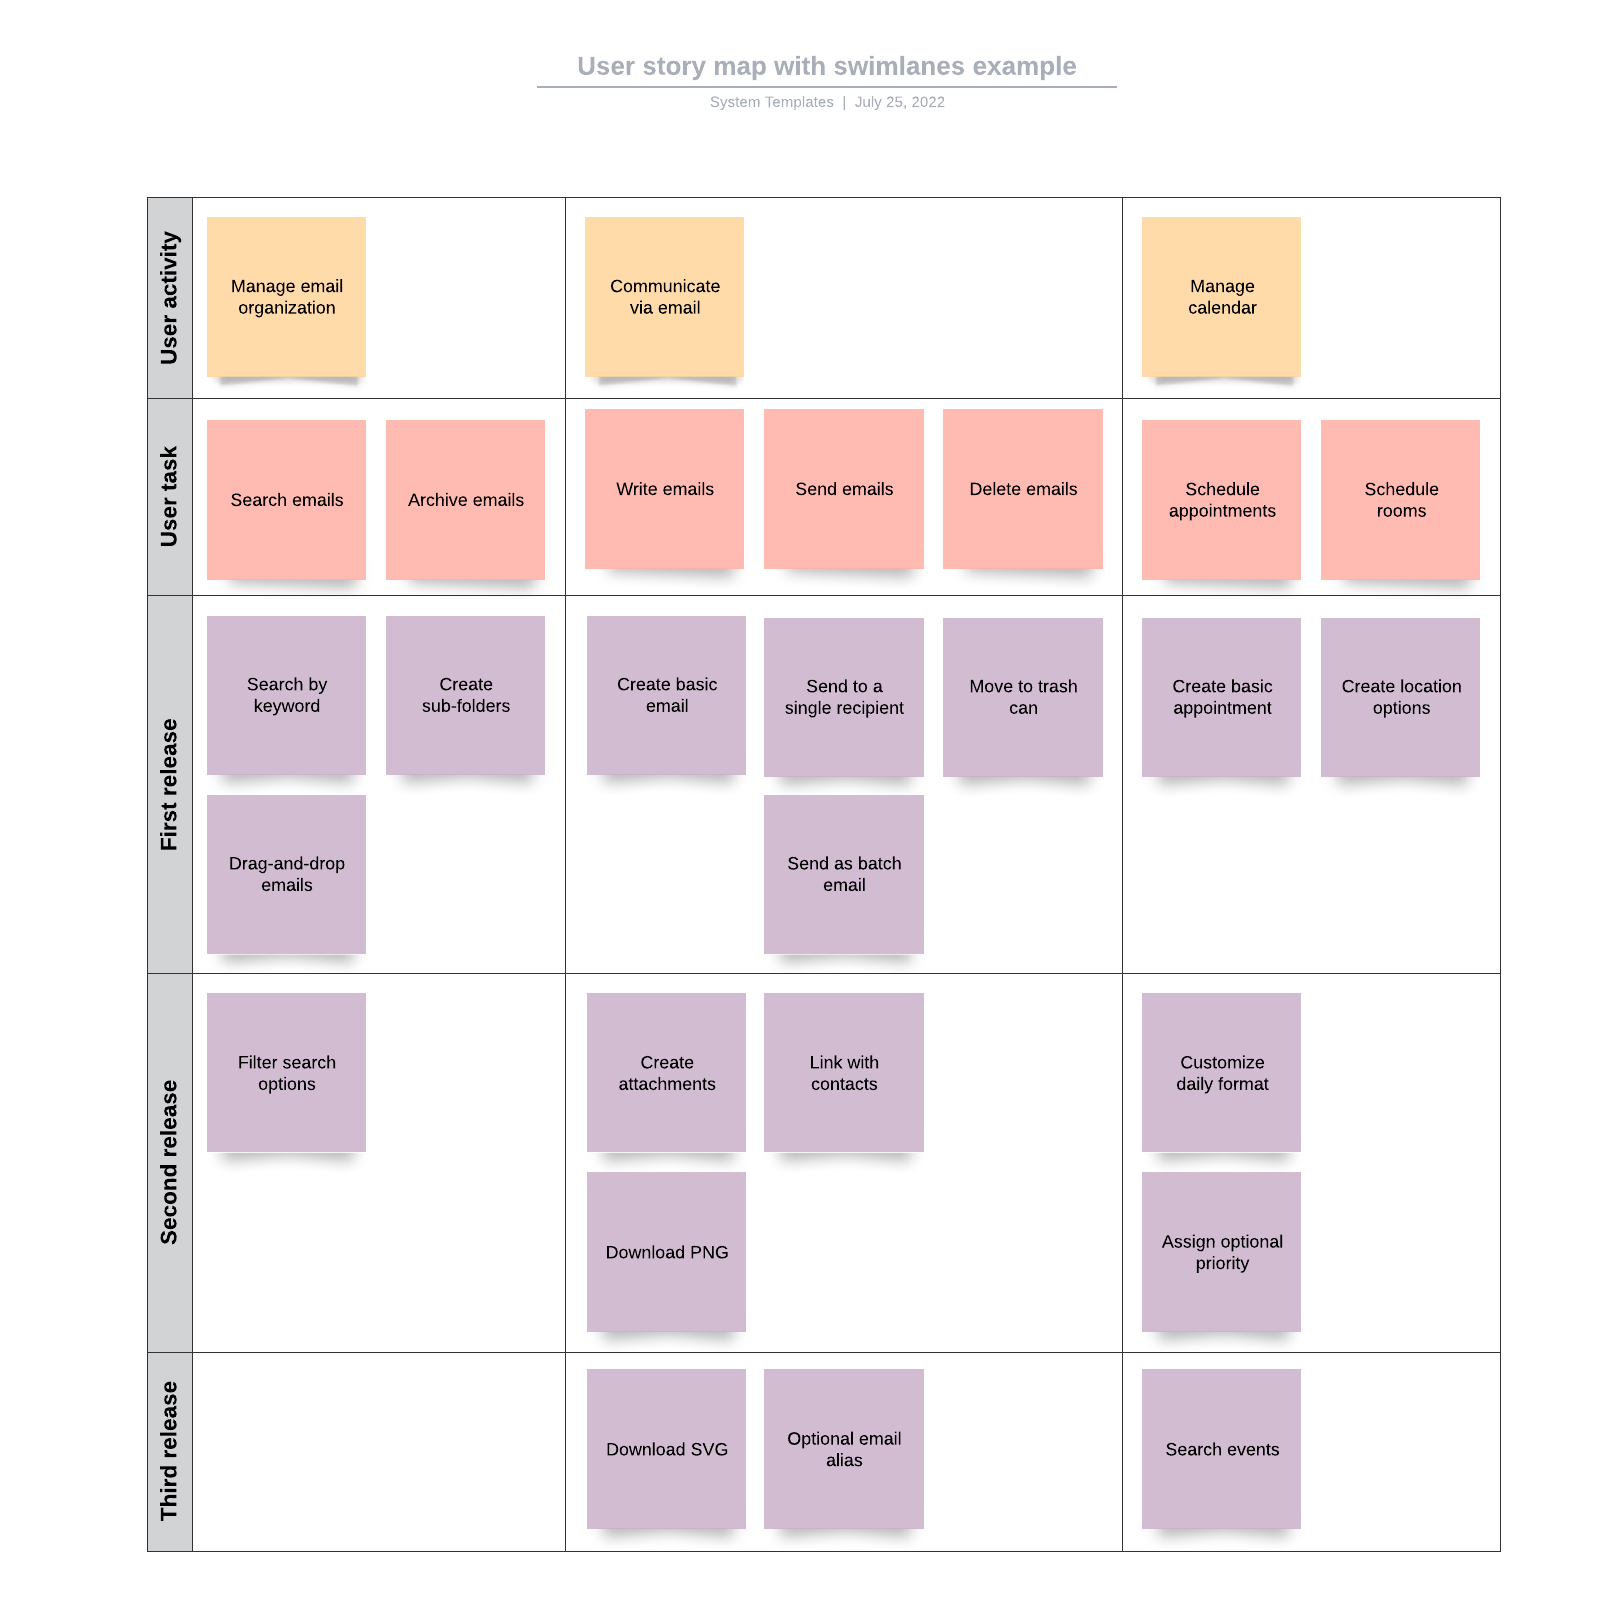 User story map with swimlanes example